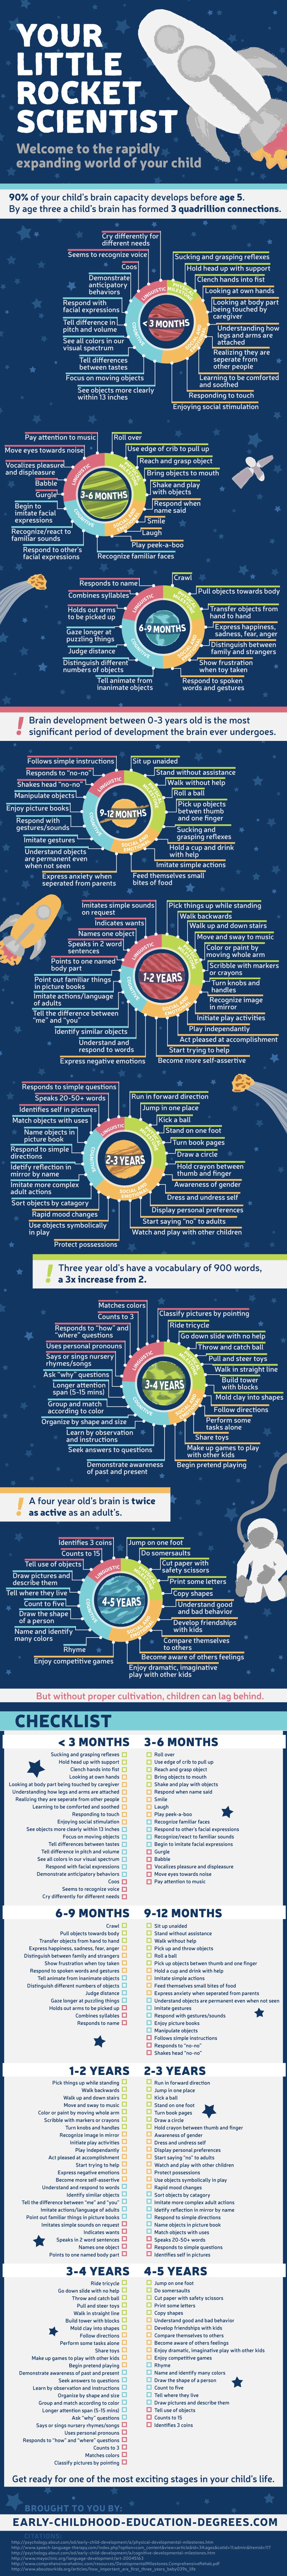 The-Milestones-of-a-Childs-Mind-Development-Infographic